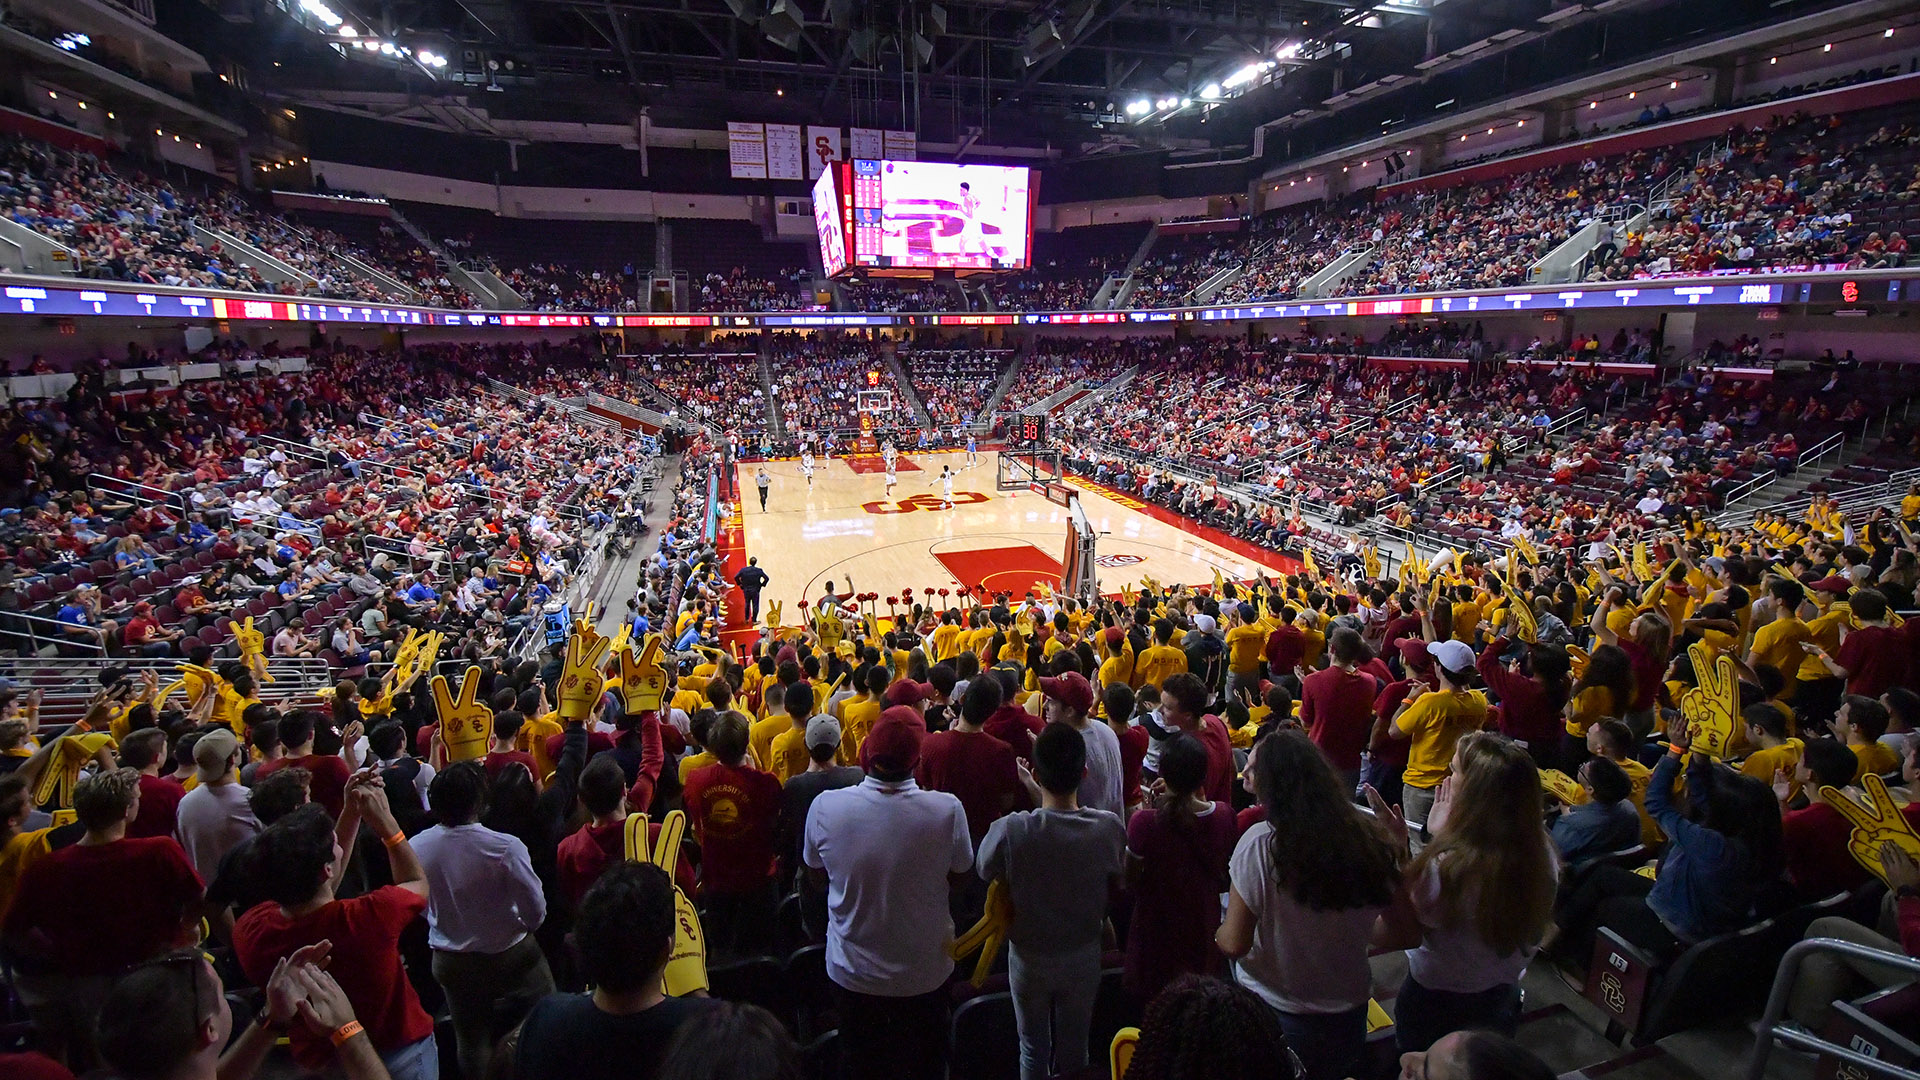 USC Announces 2019-20 Men's Basketball Nonconference ... on mccarthy athletic center map, galen center los angeles, galen center parking map, galen center seating chart basketball, galen center directions,